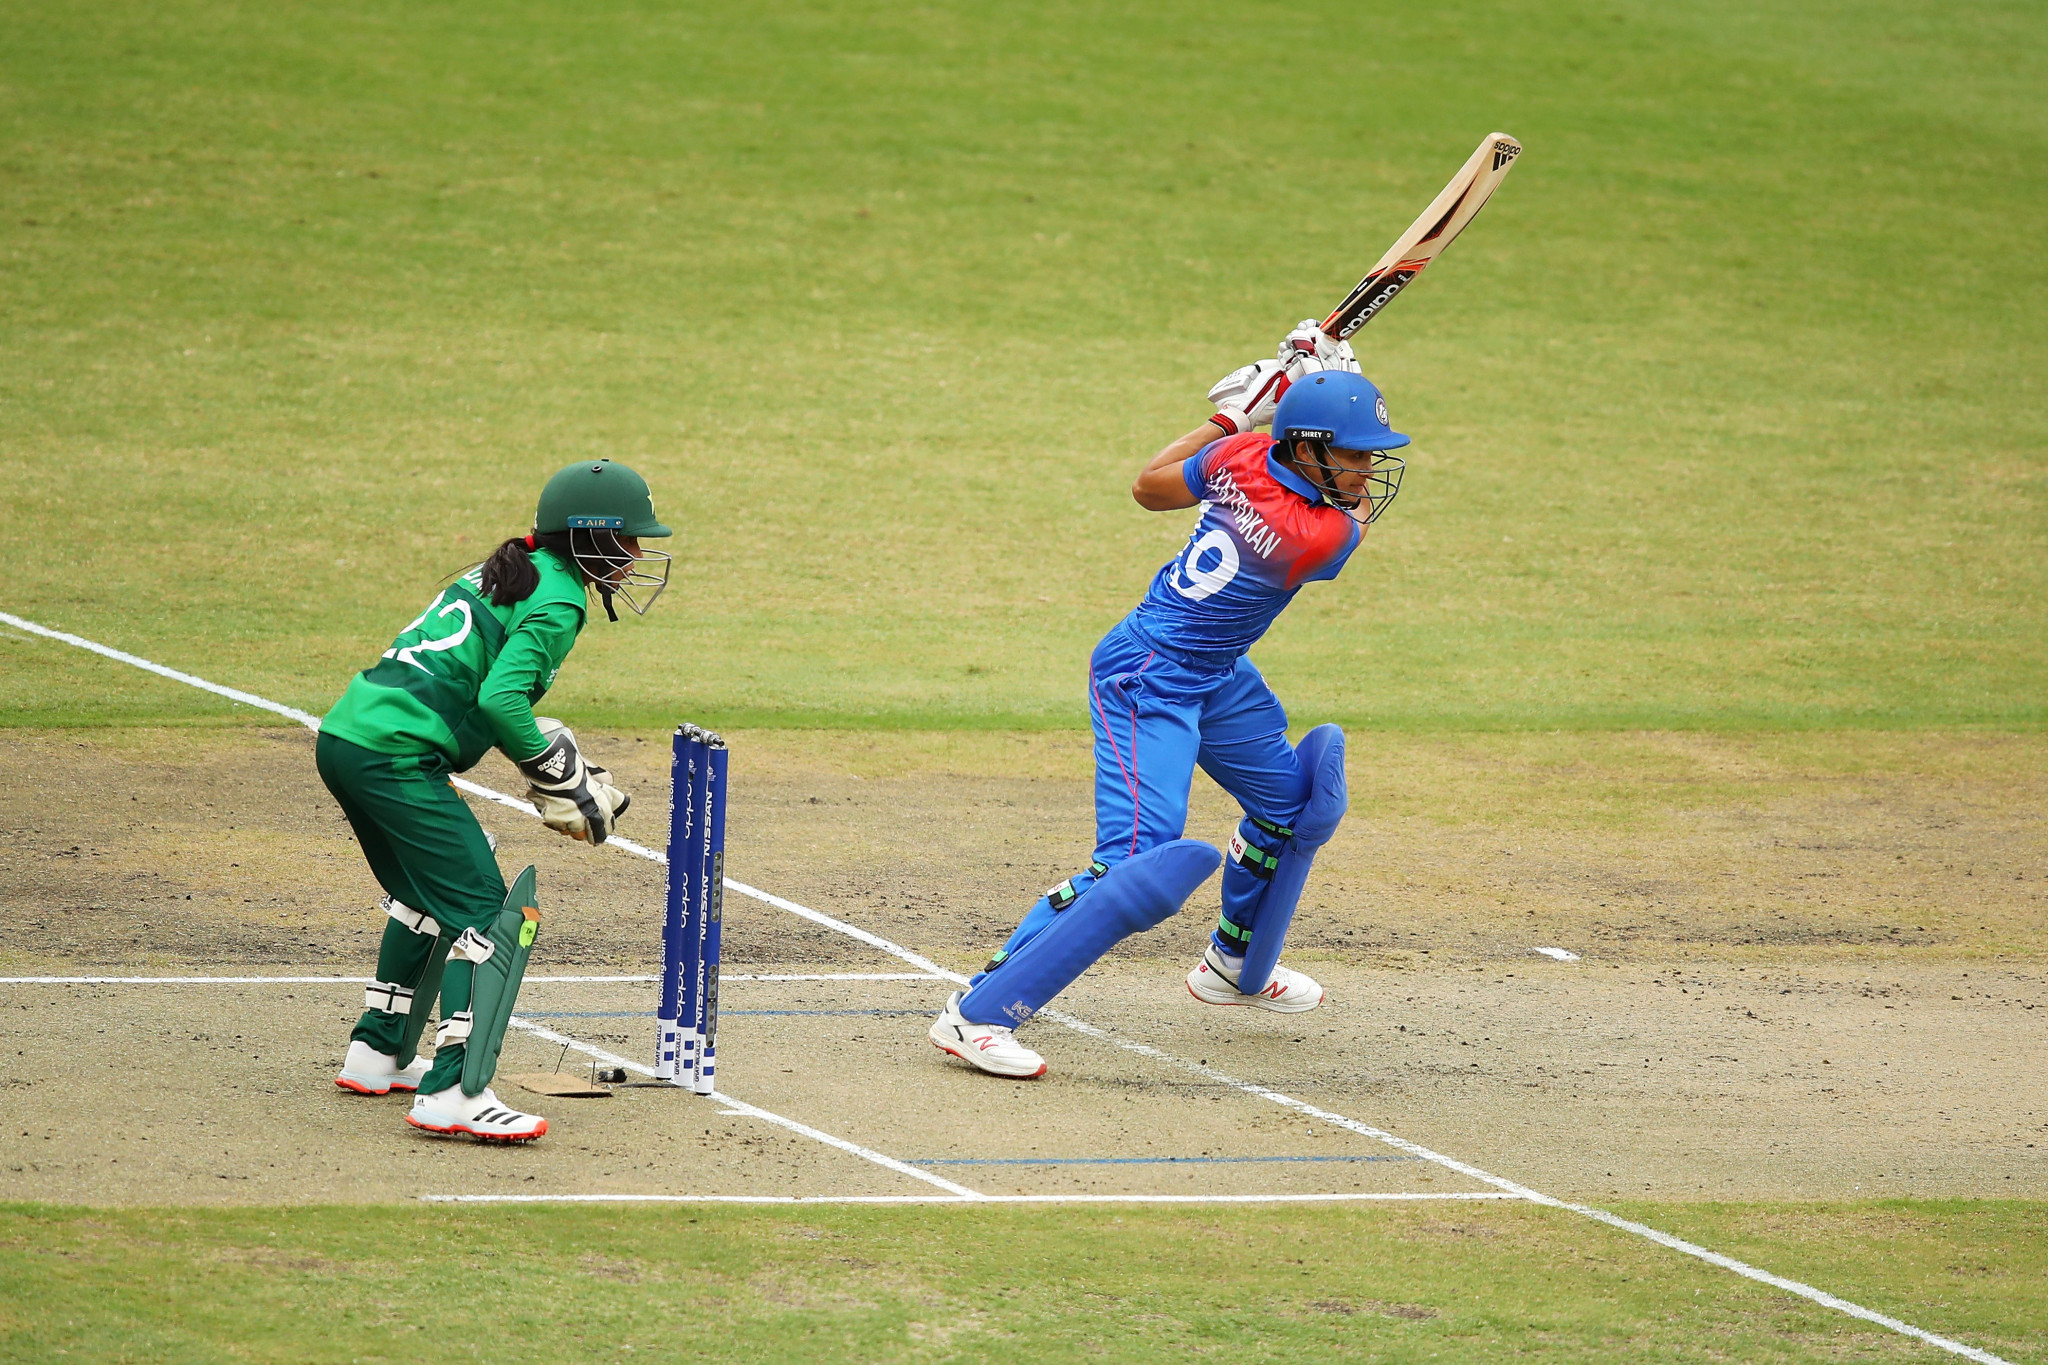 The next ICC Women's T20 World Cup has been moved to February 2023 ©Getty Images